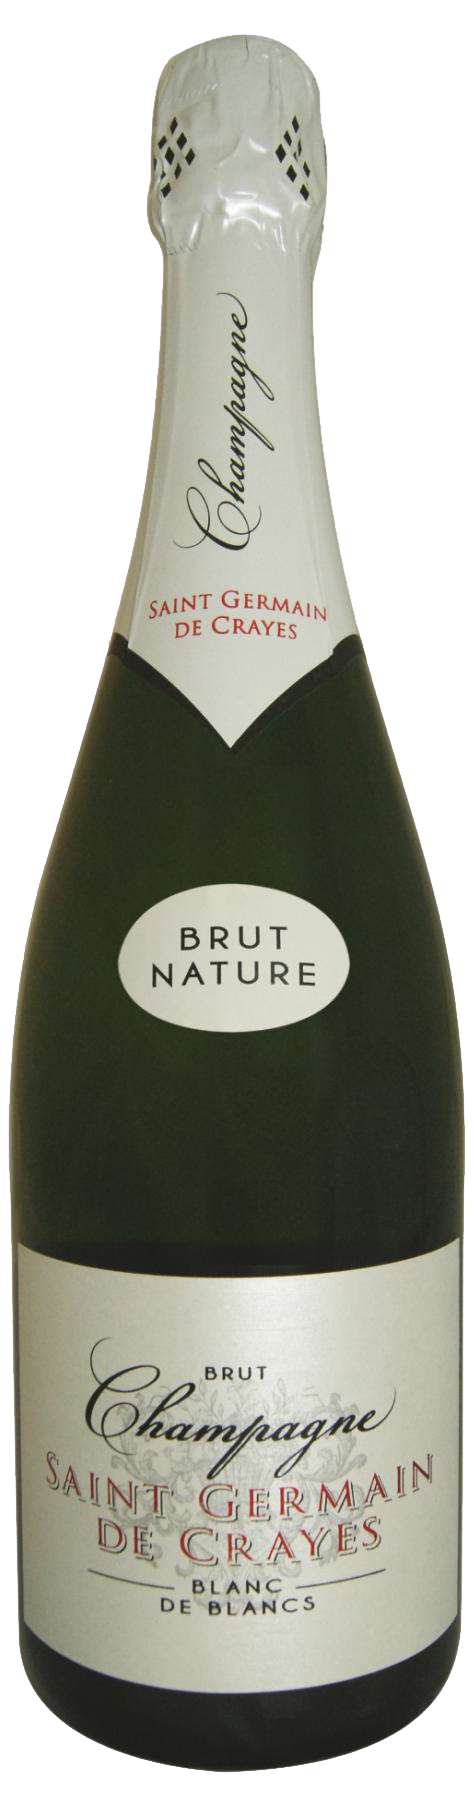 Saint Germain de Crayes Blanc de Blancs Nature